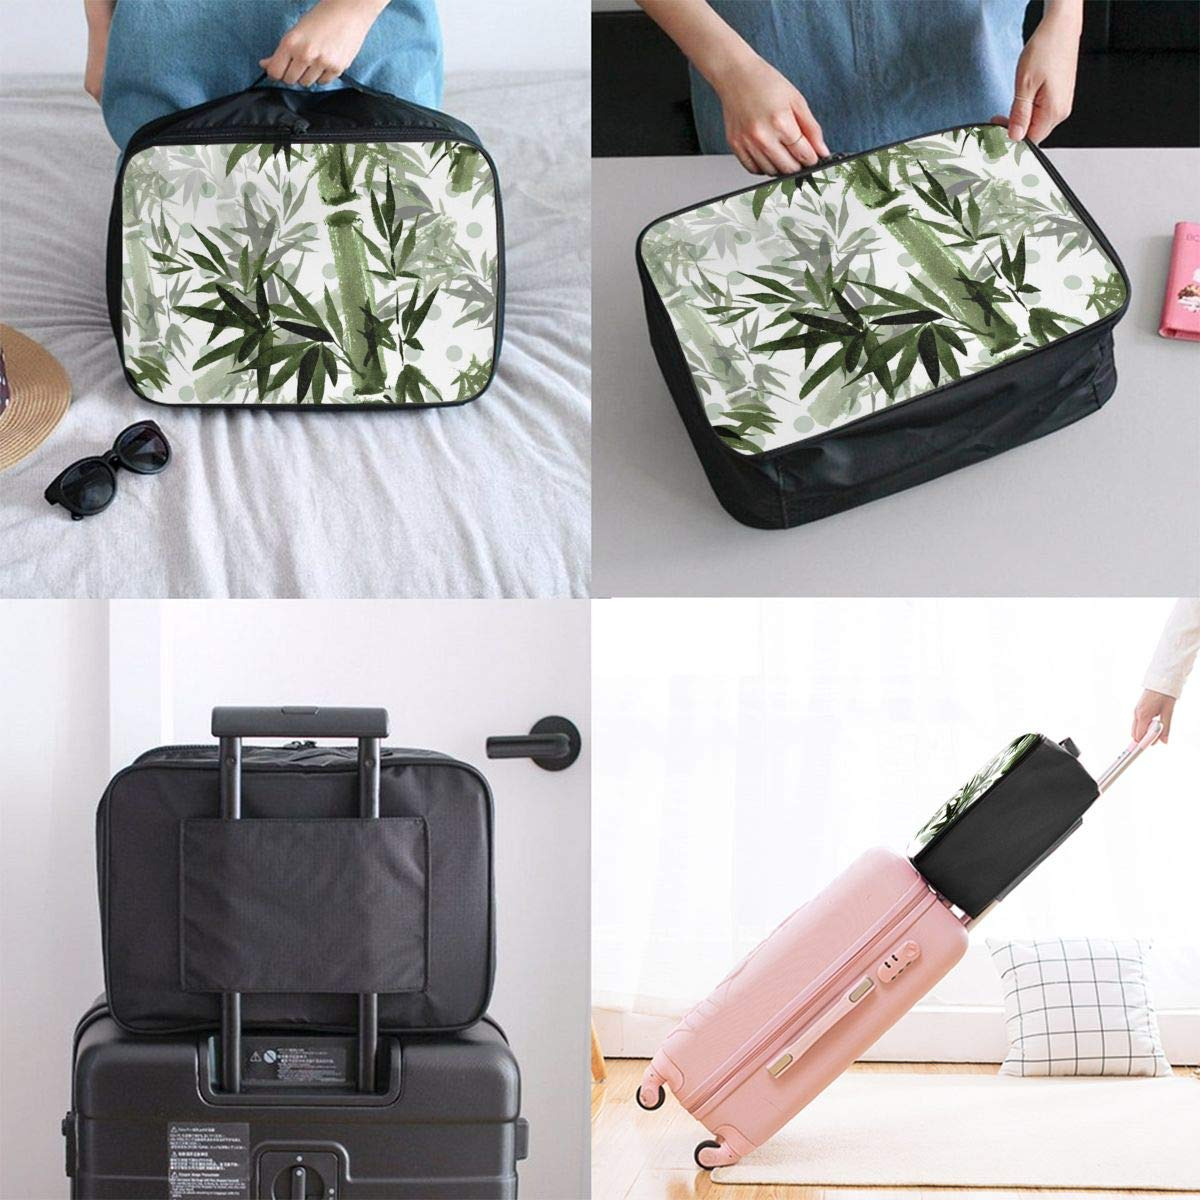 Chinoiserie Bamboo Travel Lightweight Waterproof Foldable Storage Carry Luggage Duffle Tote Bag Large Capacity In Trolley Handle Bags 6x11x15 Inch